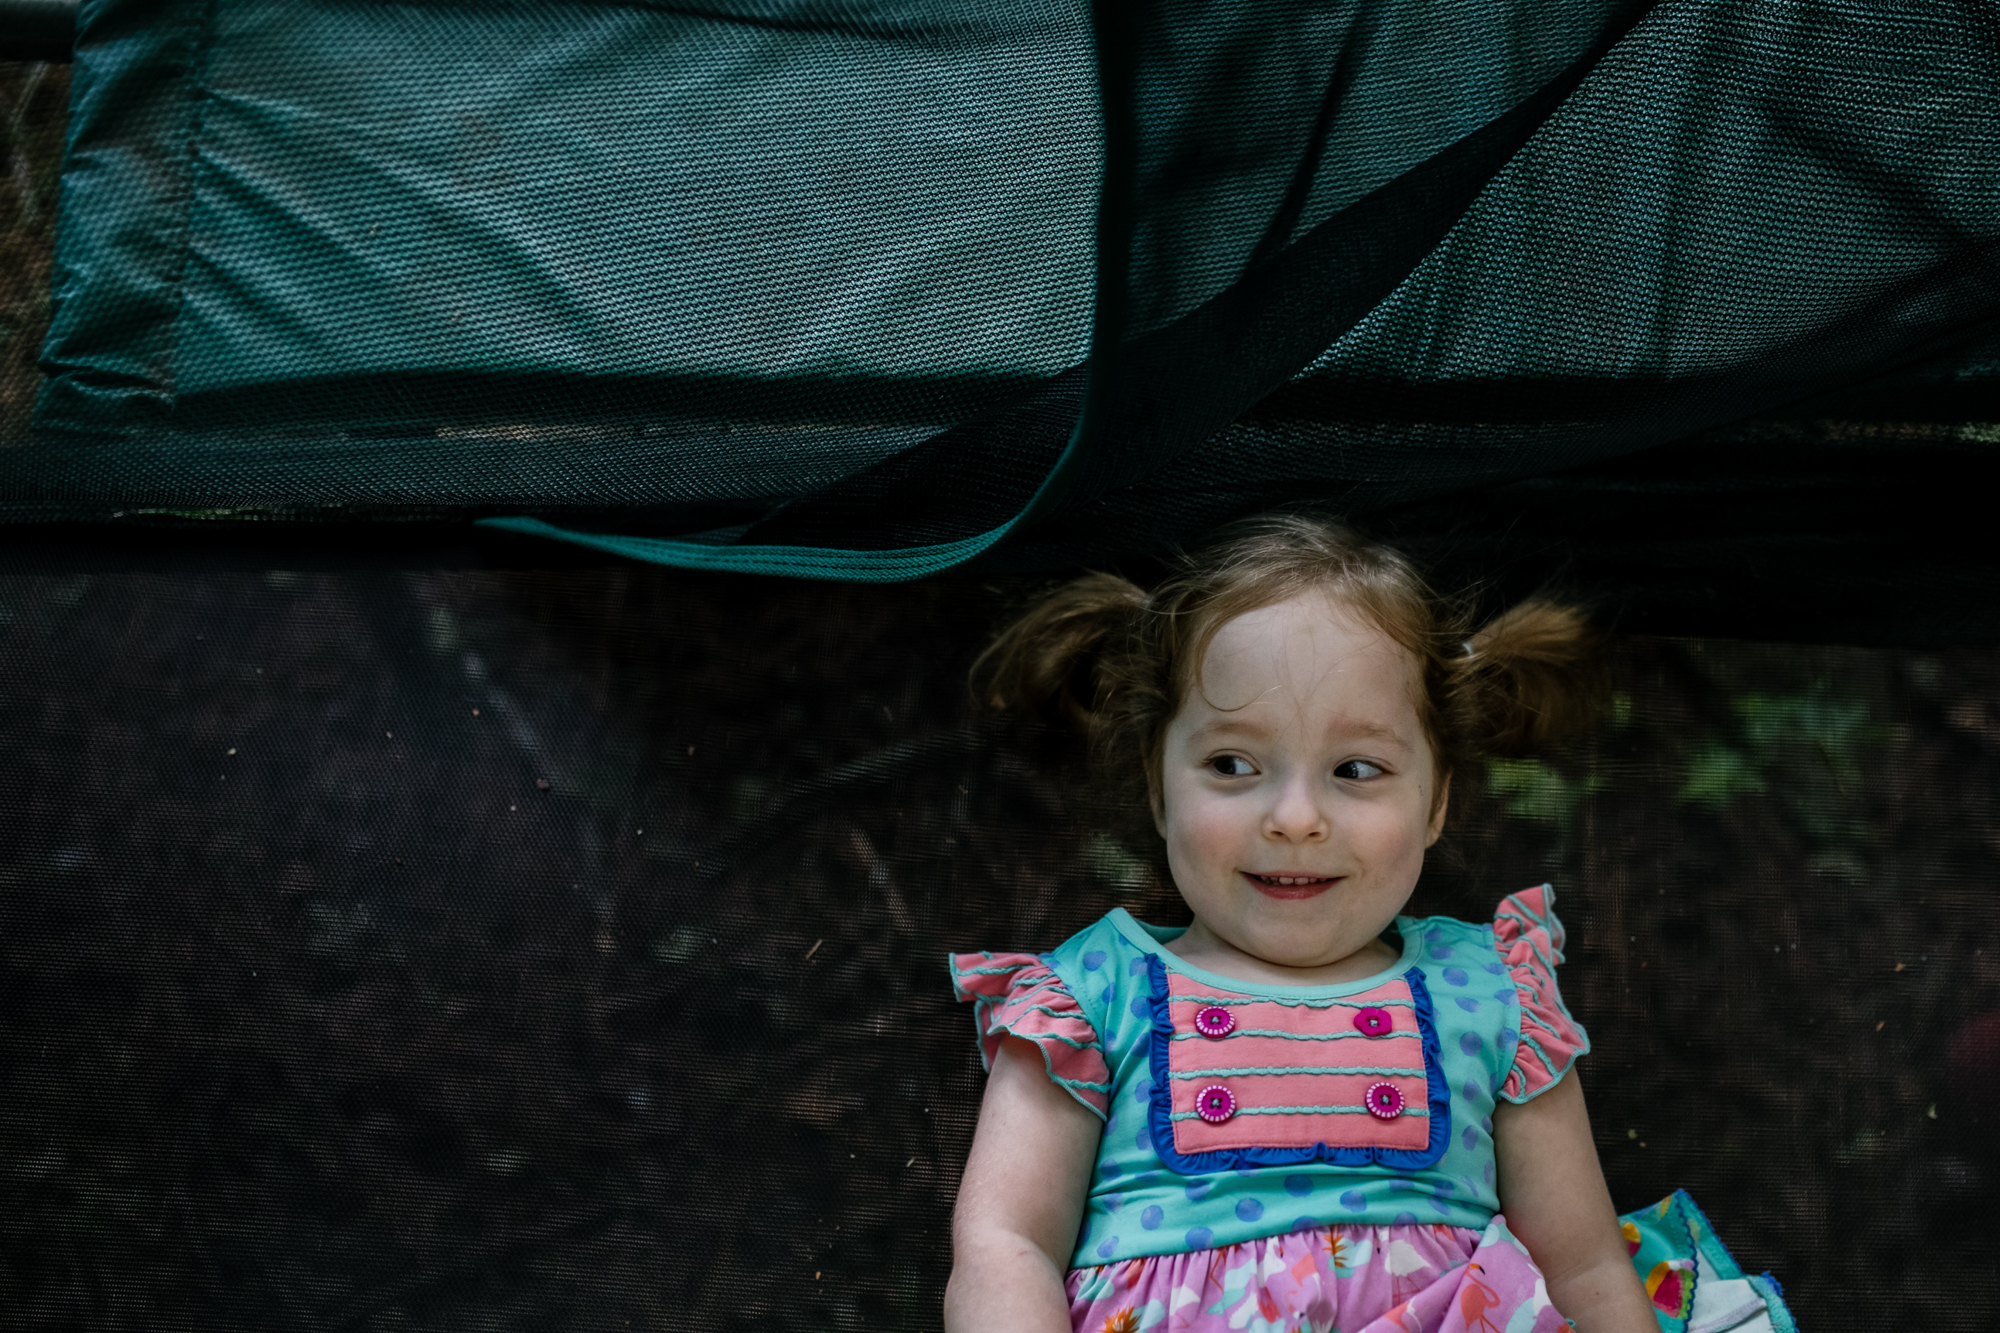 environmental portrait of girl lying on a trampoline